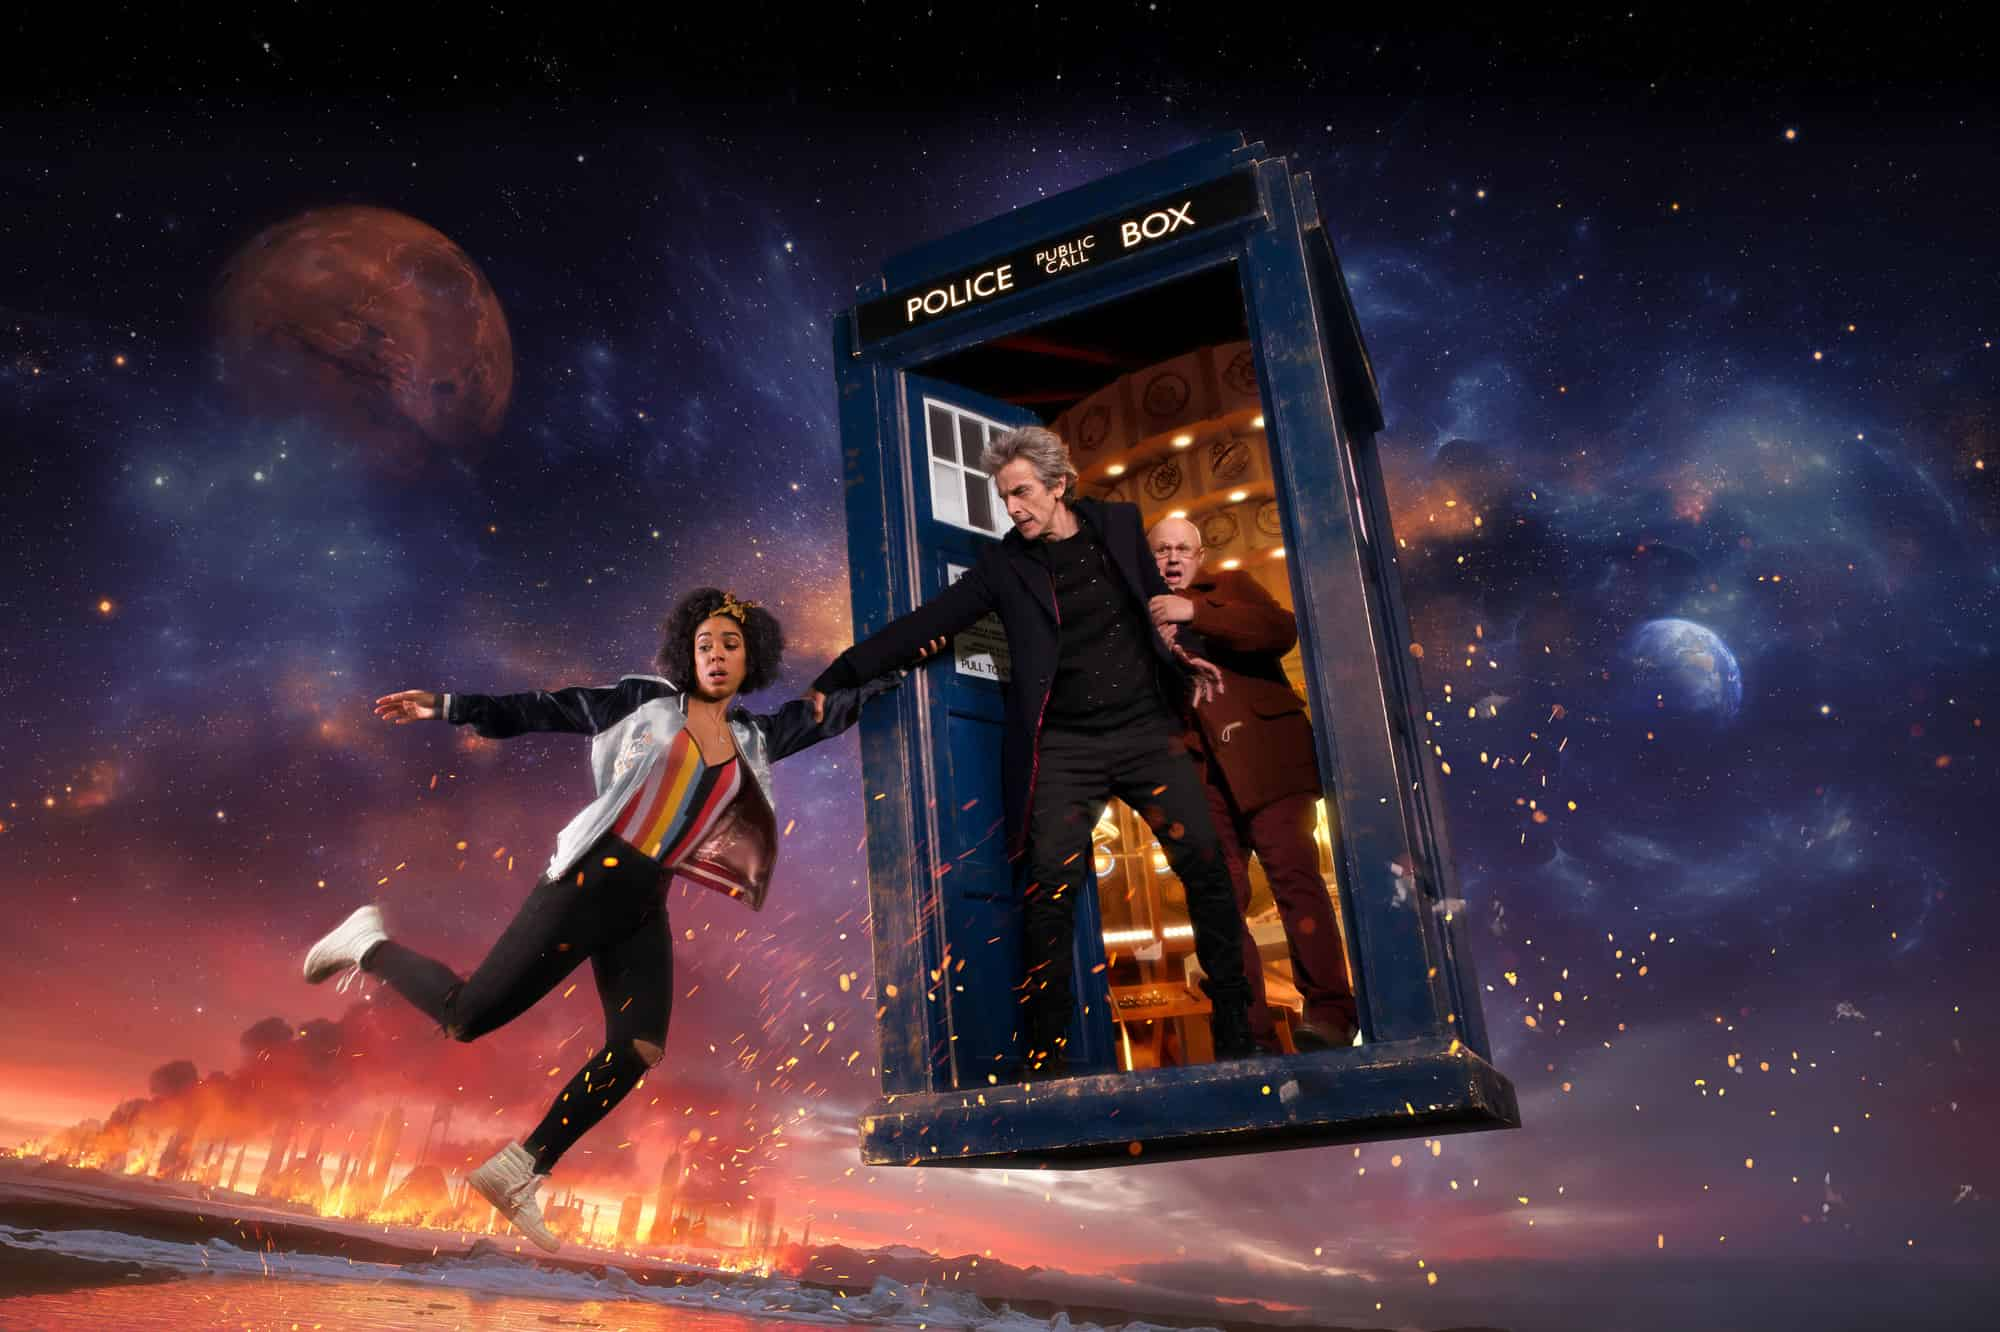 Doctor Who's Pearl Mackie says she wants to play James Bond